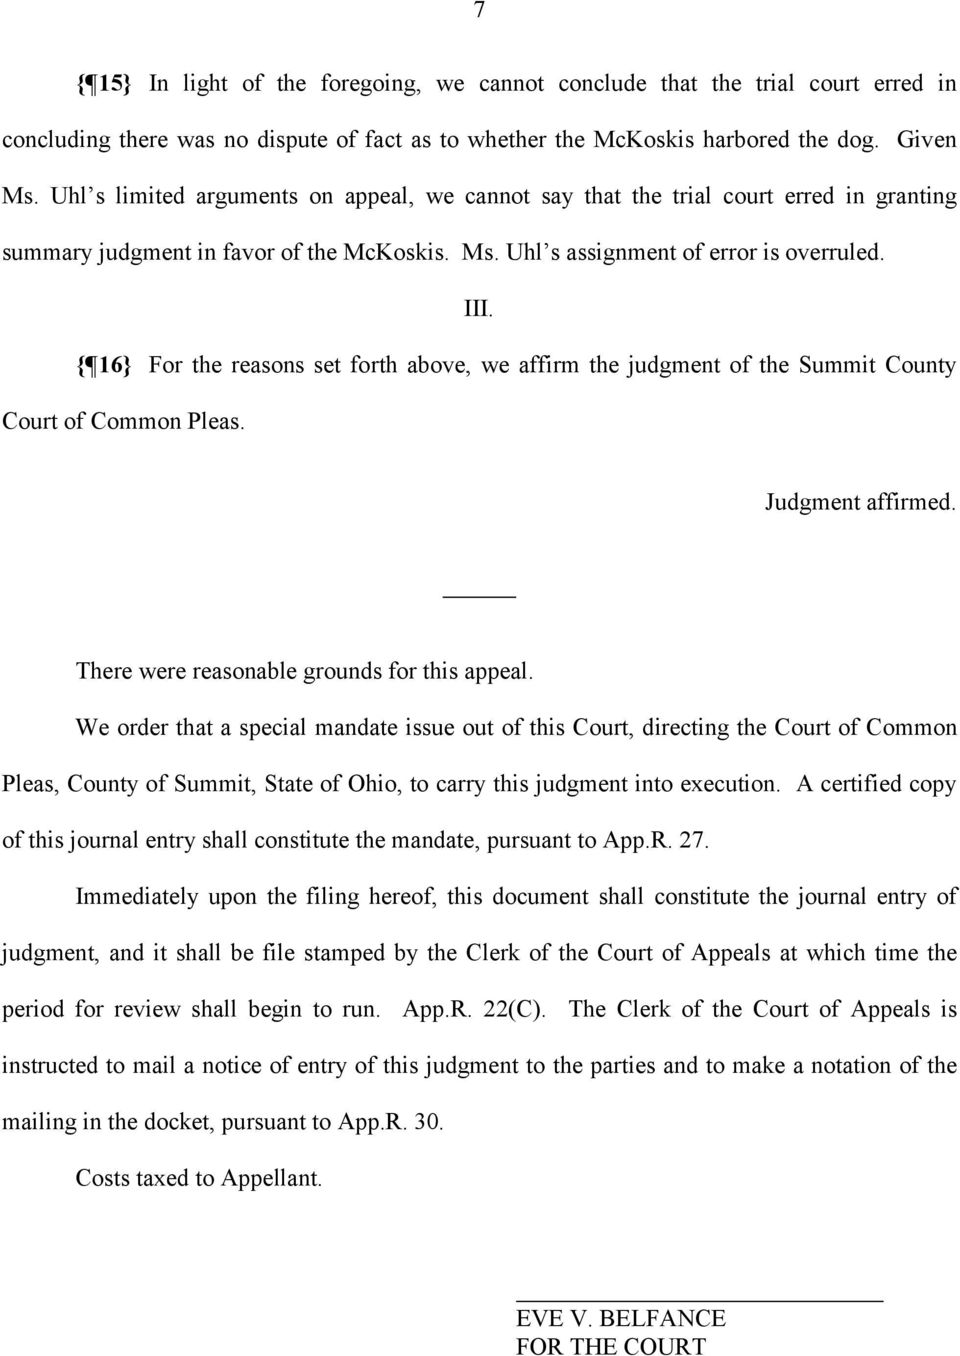 { 16} For the reasons set forth above, we affirm the judgment of the Summit County Court of Common Pleas. Judgment affirmed. There were reasonable grounds for this appeal.